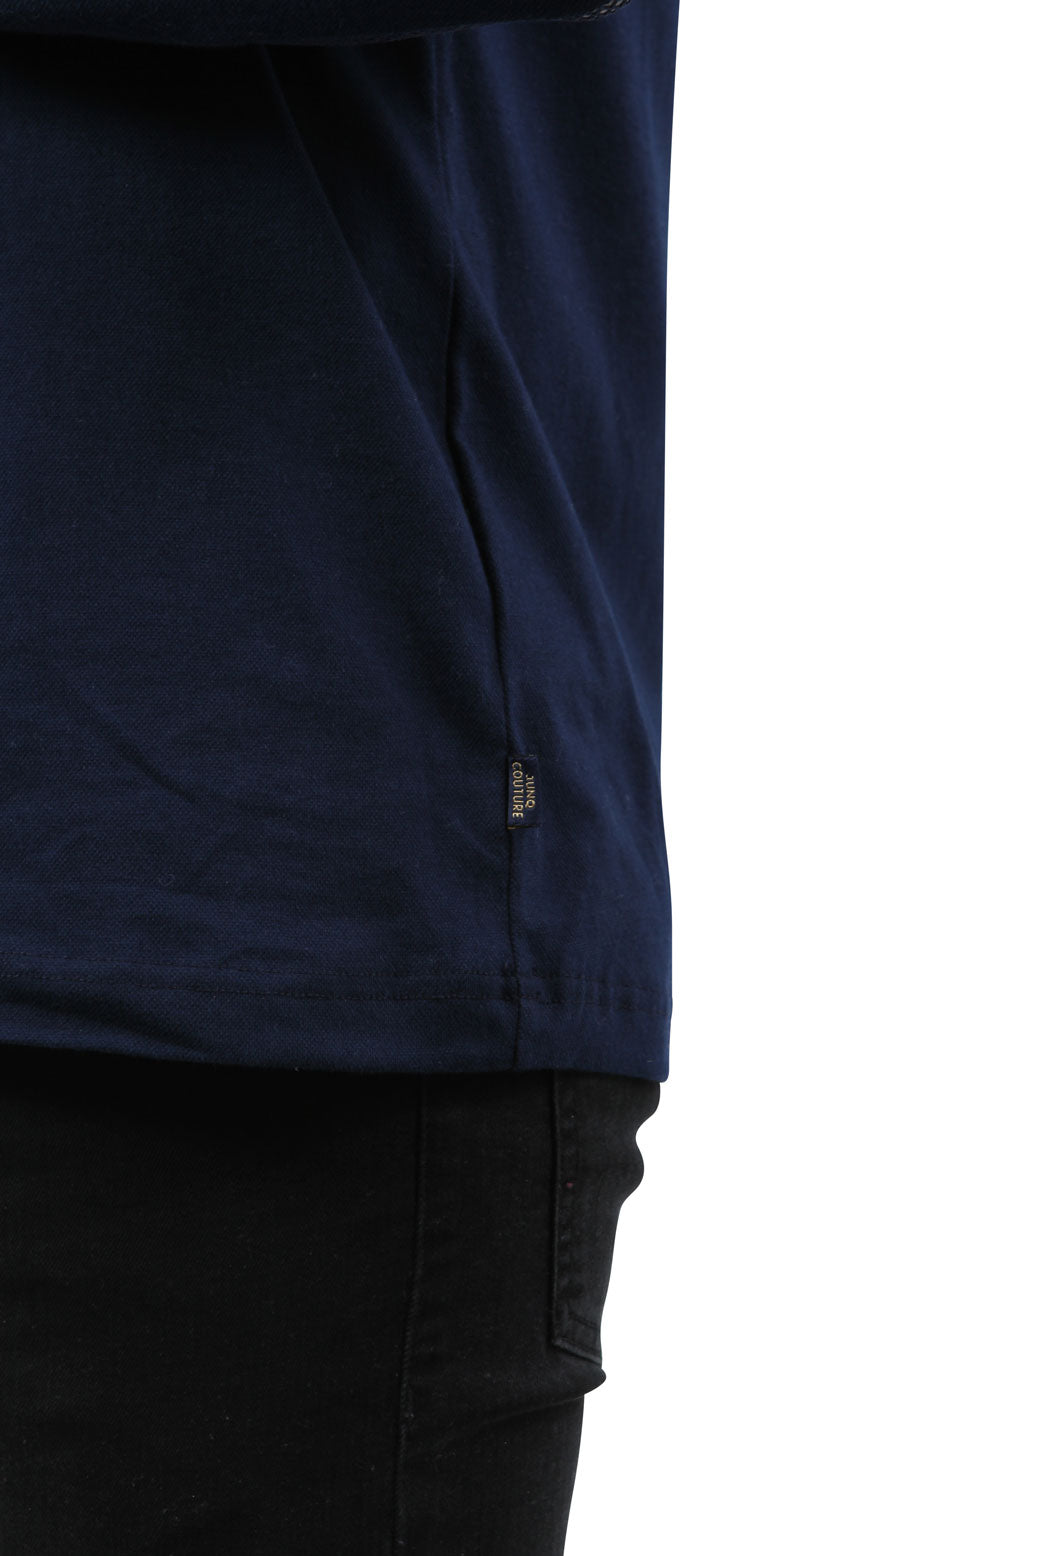 Style: Srigal Long Sleeve Polo Navy - Junq Couture